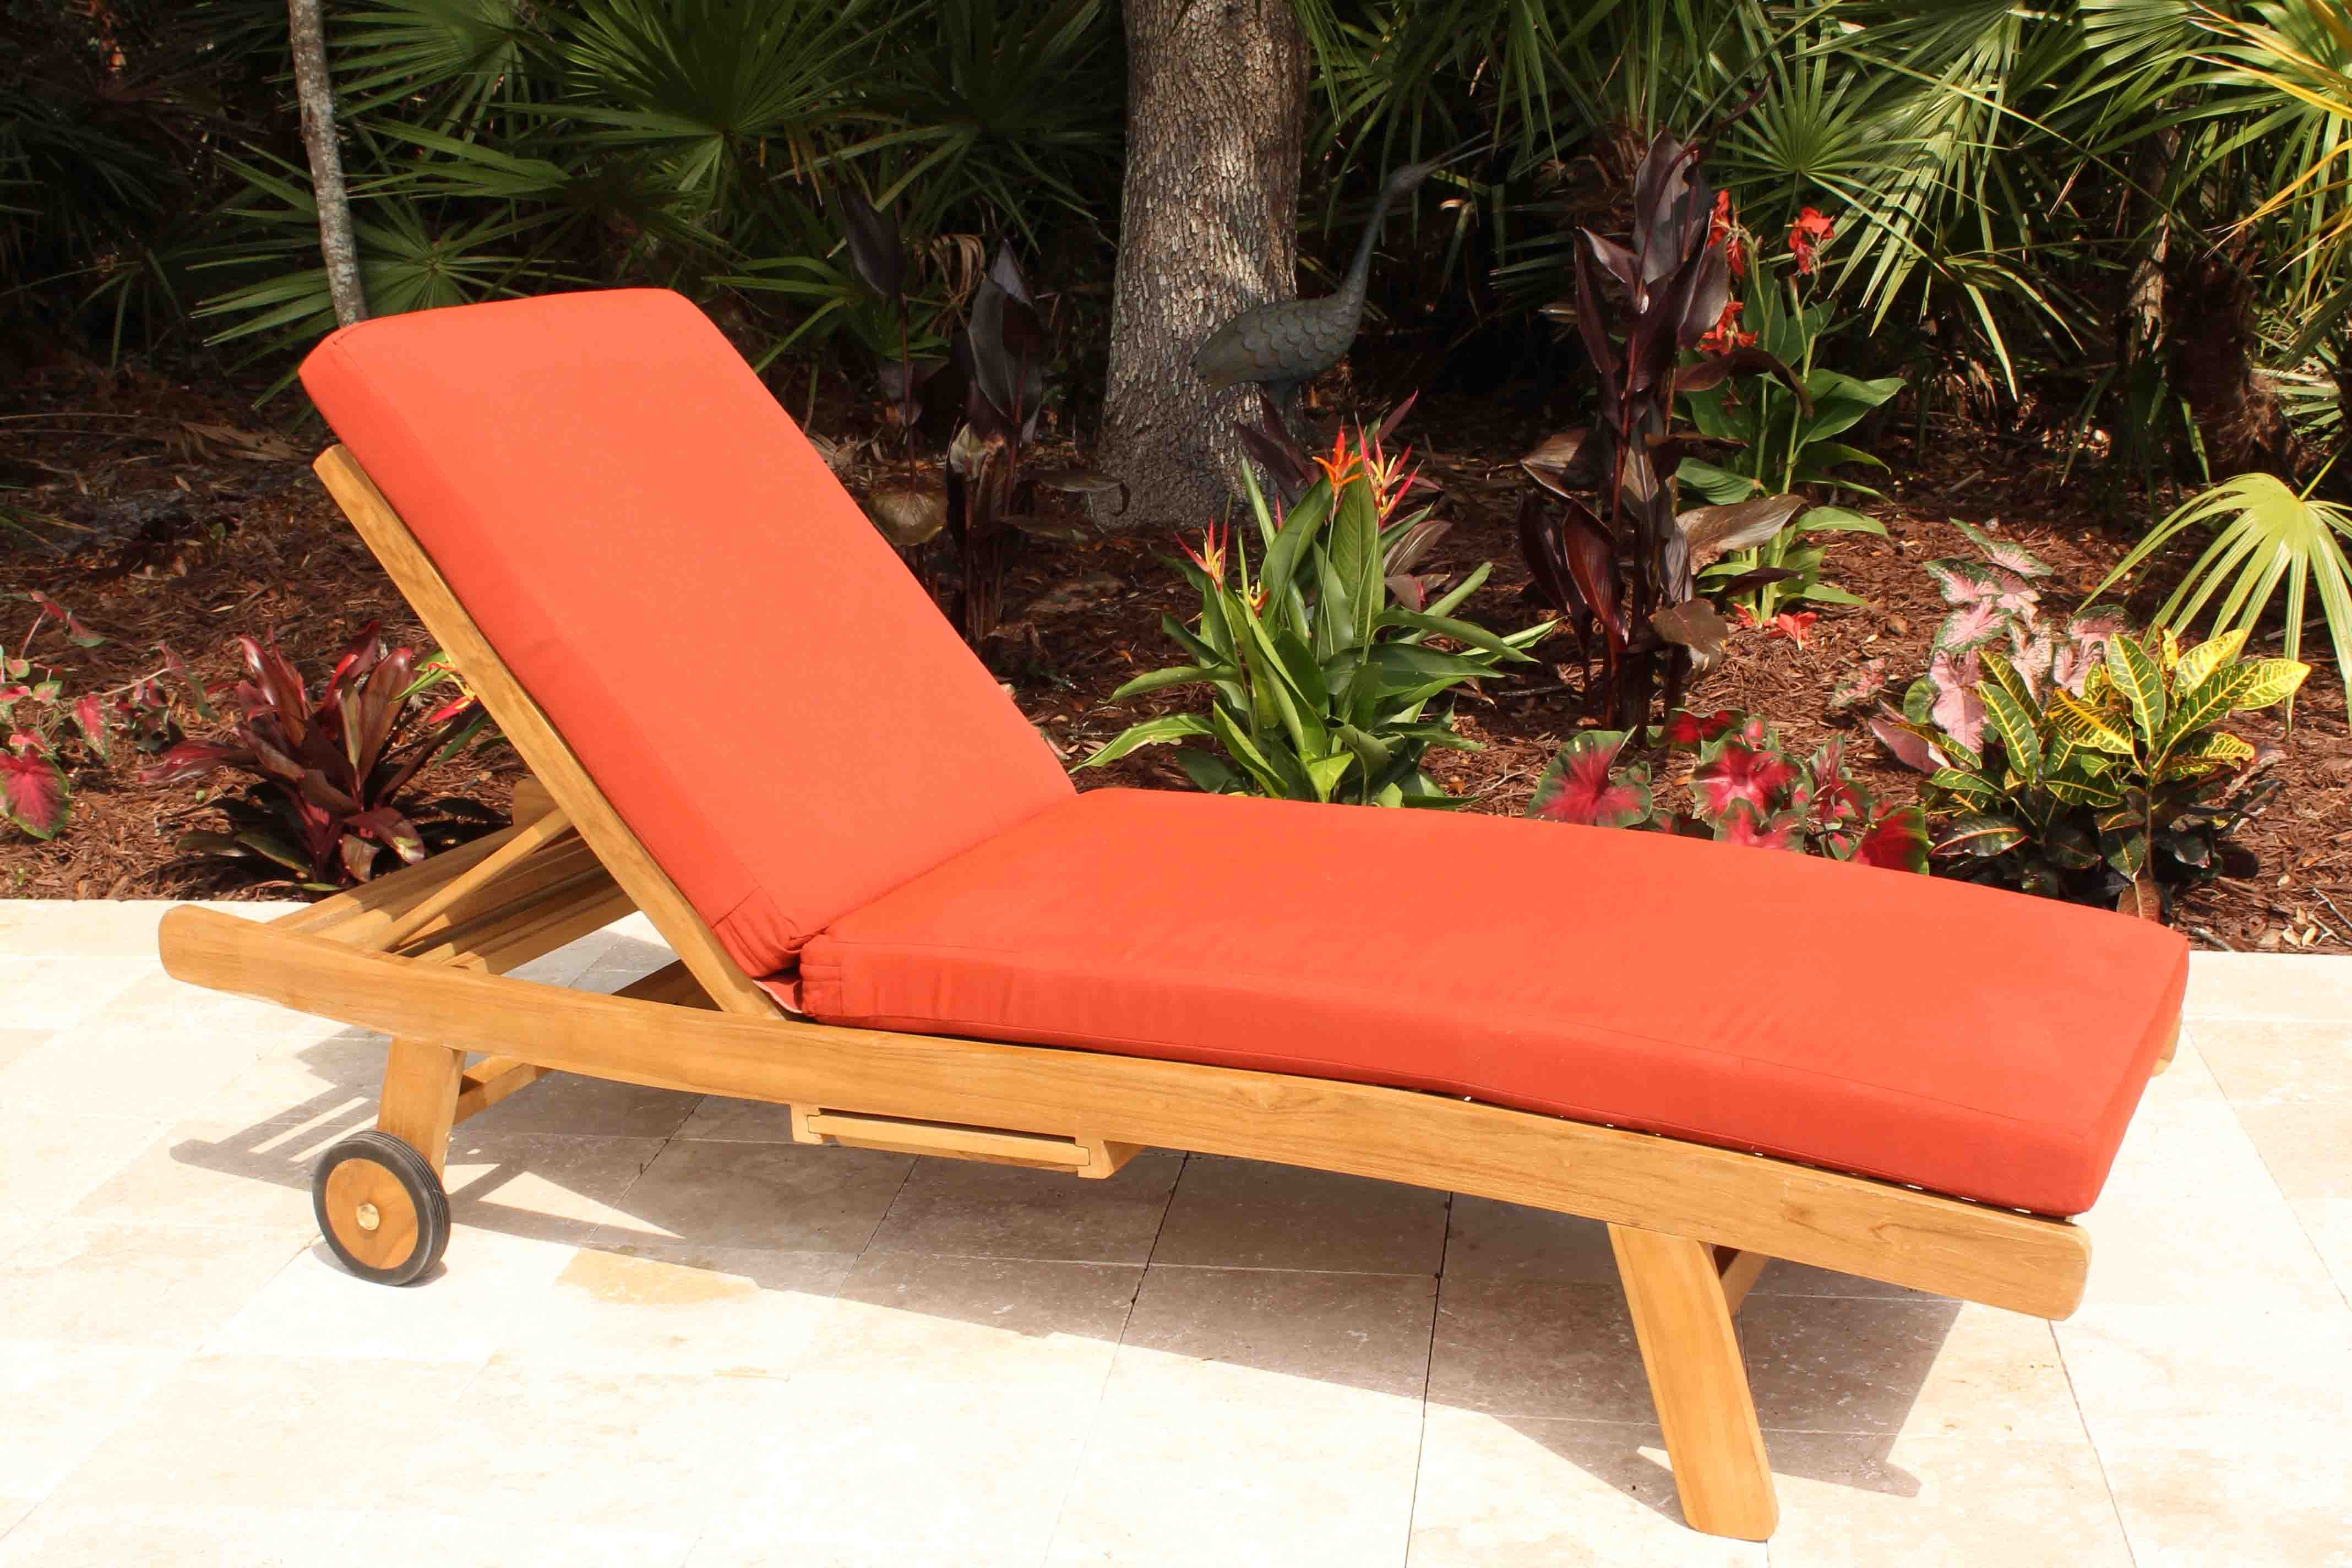 Popular Teak Chaise Lounge Cushions In Sale Sunbrella Fabric Chaise Lounge Cushion (View 6 of 15)